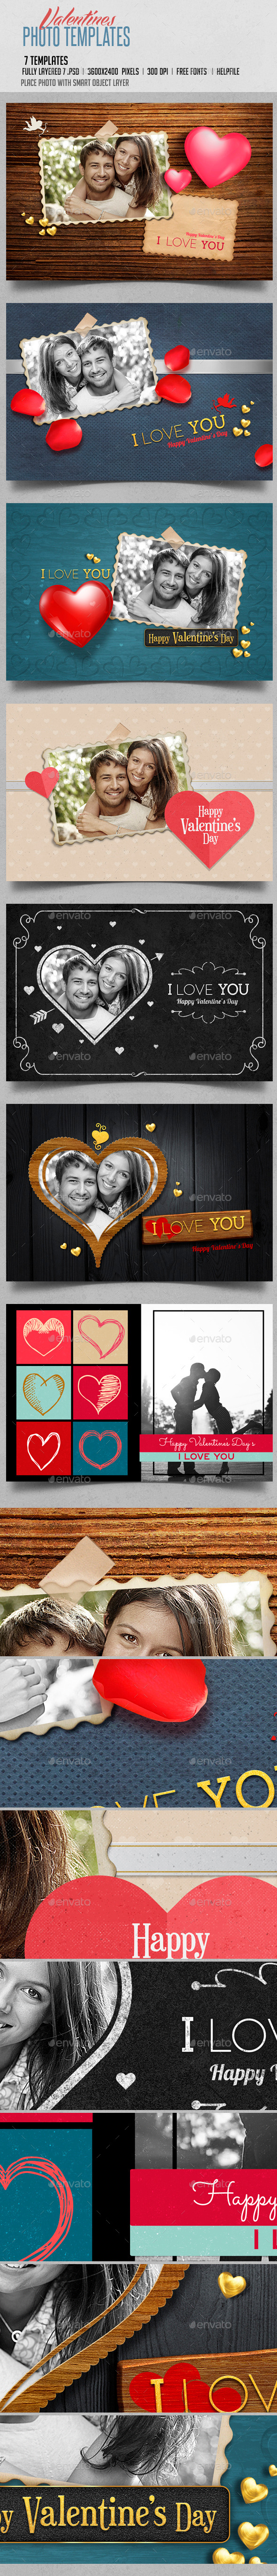 Valentines Photo Templates - Miscellaneous Photo Templates